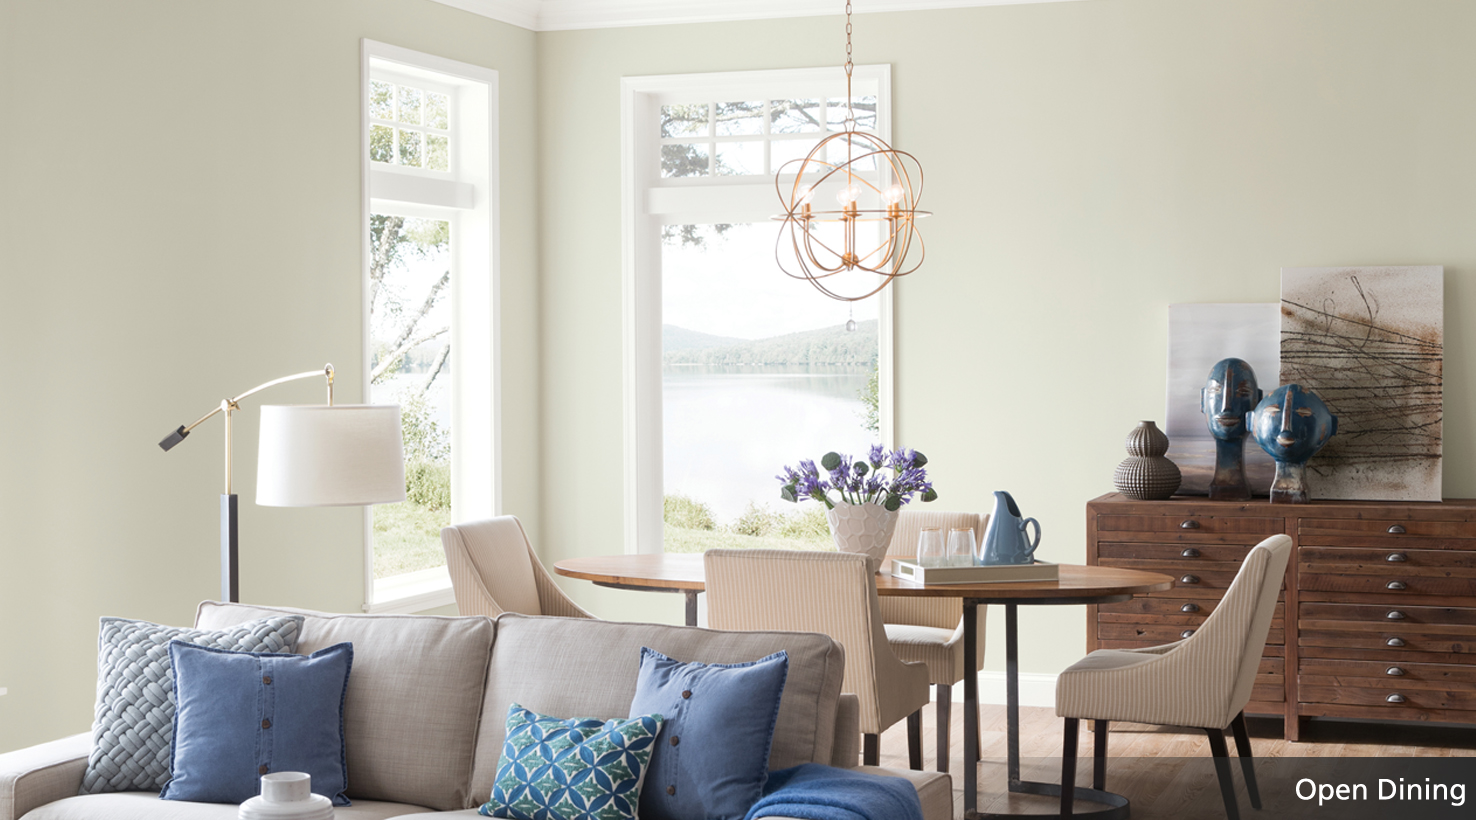 Open Floor Plan Paint Color Guide | Sherwin-Williams